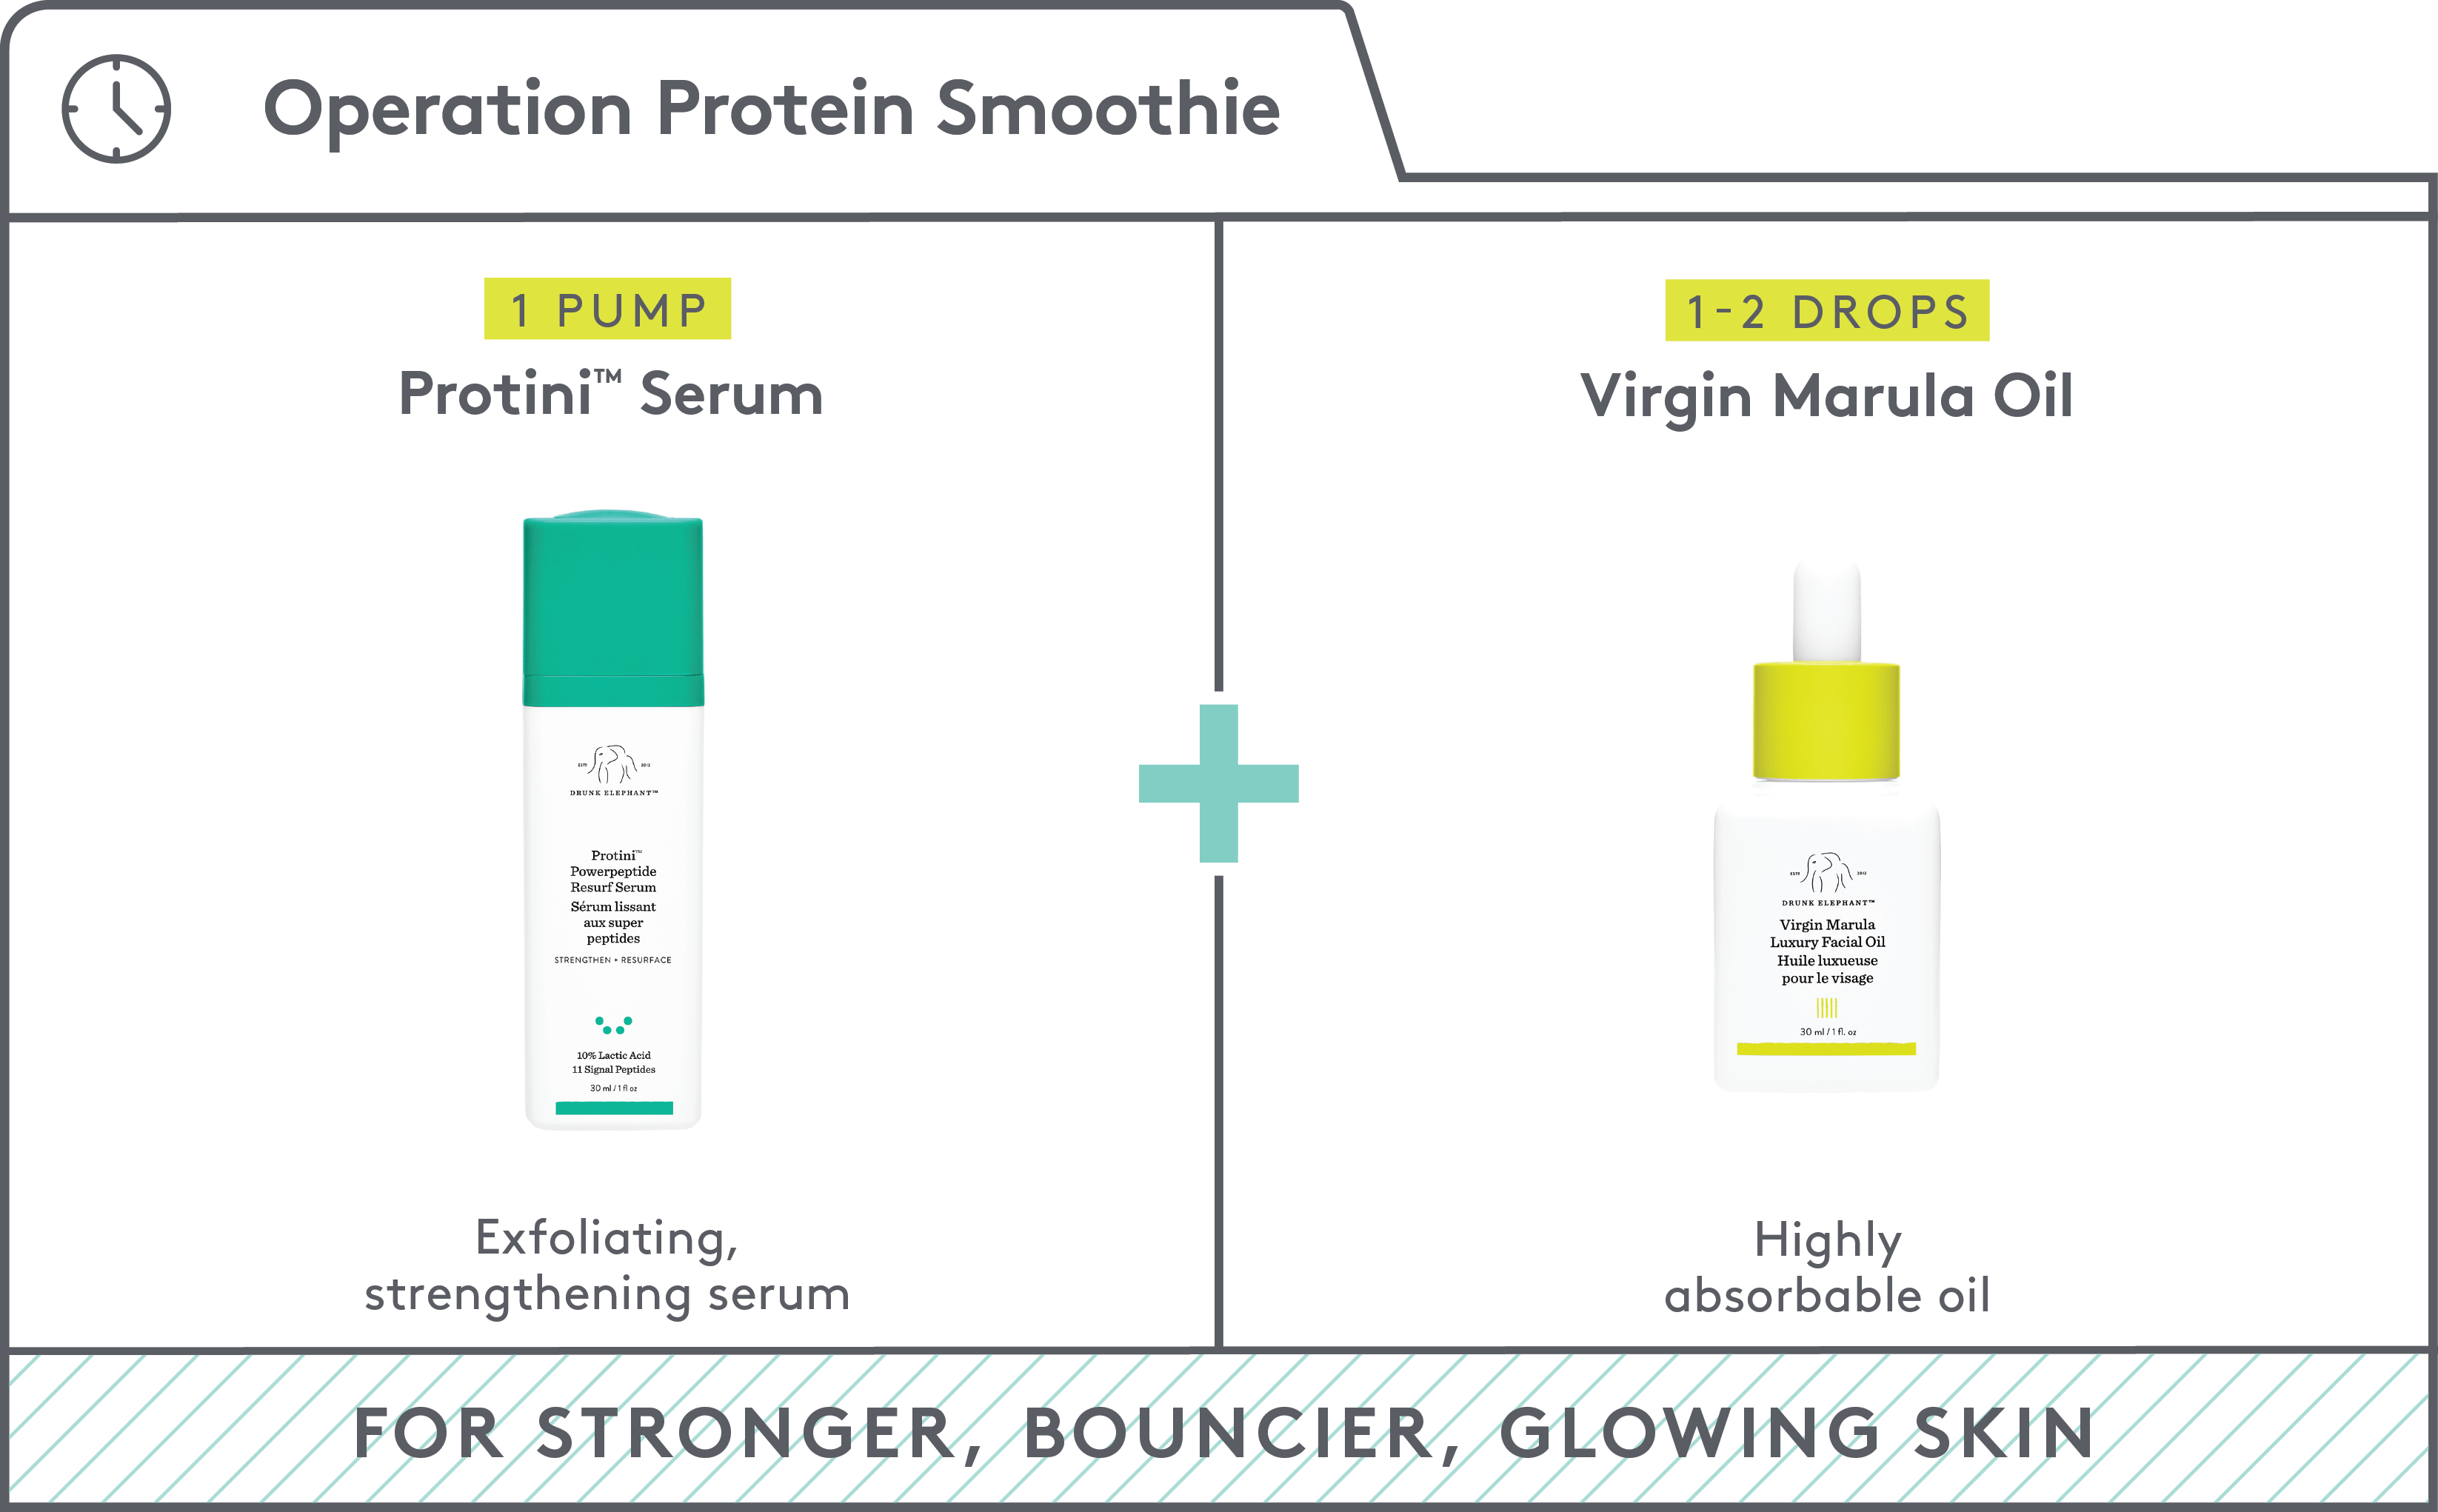 Operation Protein Smoothie